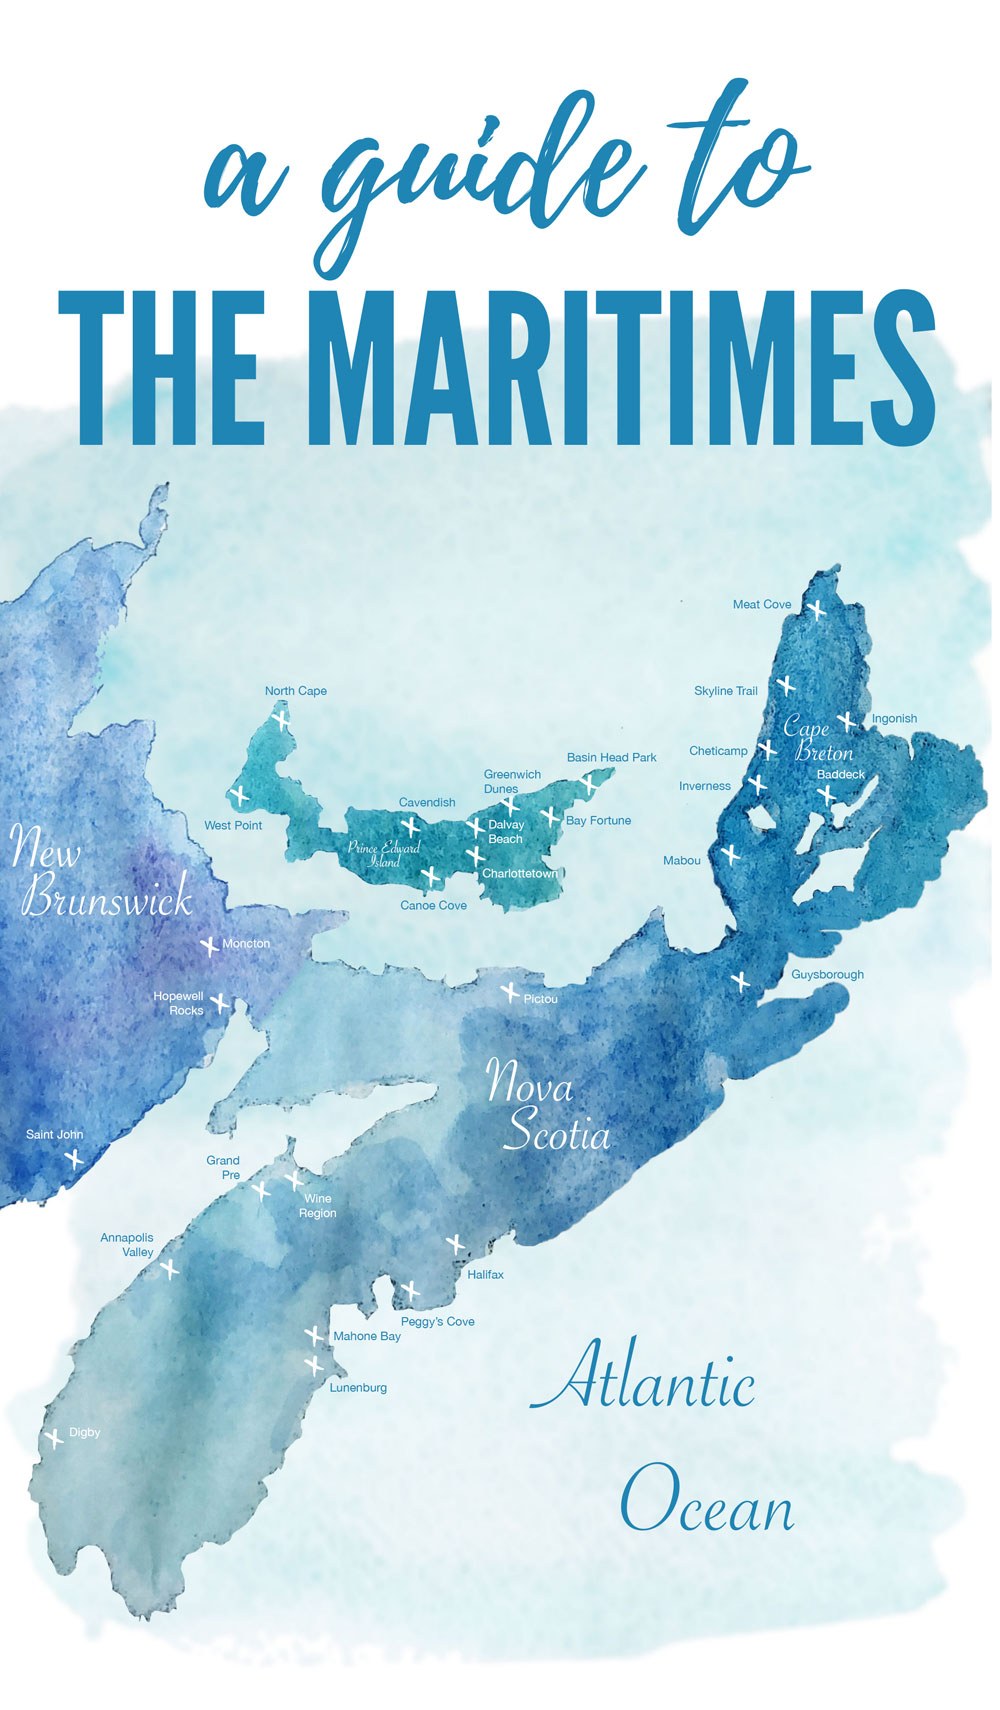 Maritimes travel guide